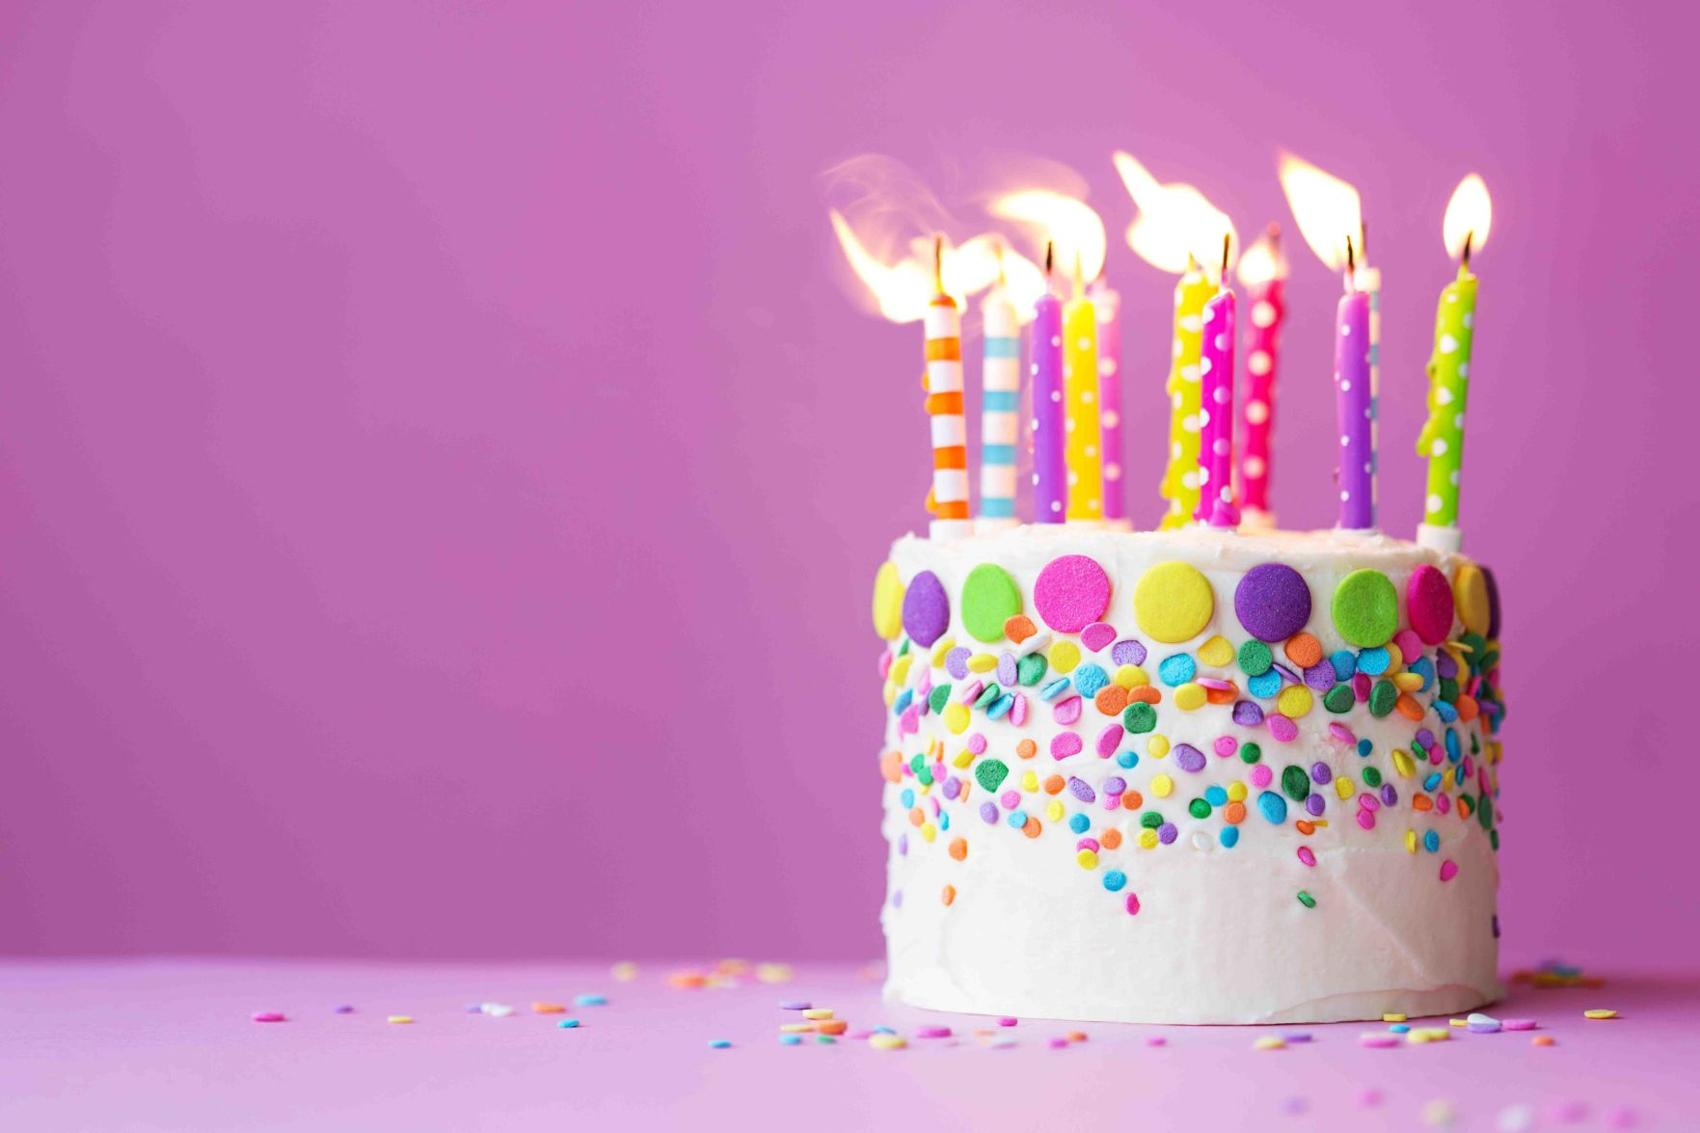 Making birthdays special for children in foster care